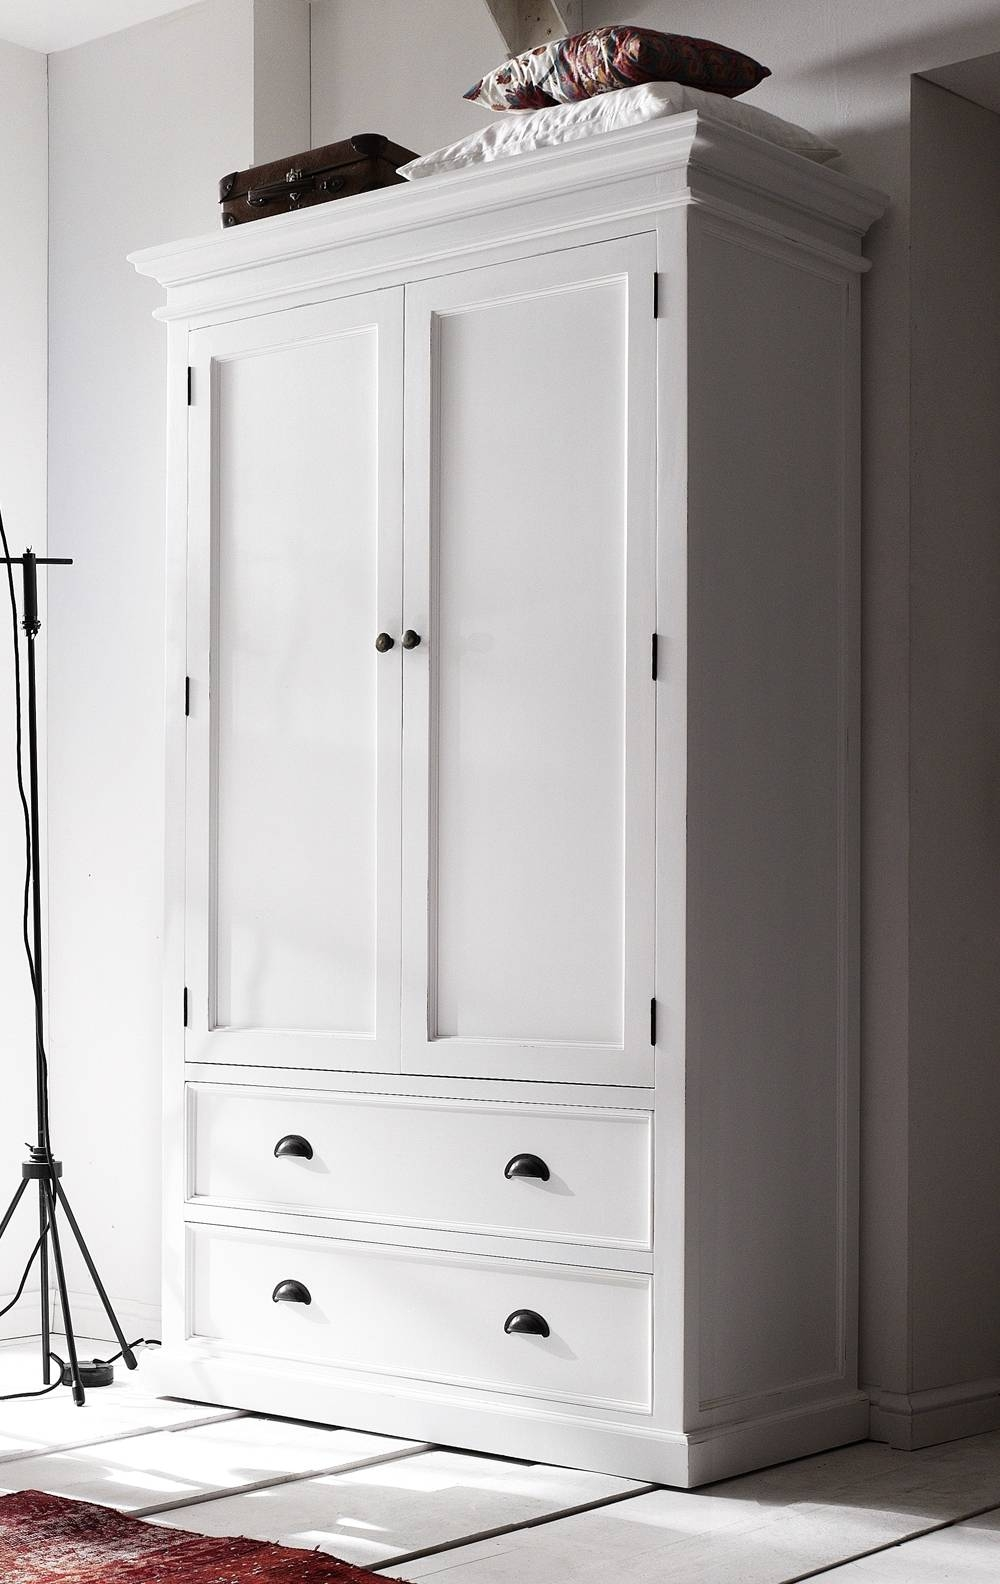 White Painted Wardrobe With 2 Drawers - Belgravia Painted intended for White Wooden Wardrobes (Image 14 of 15)